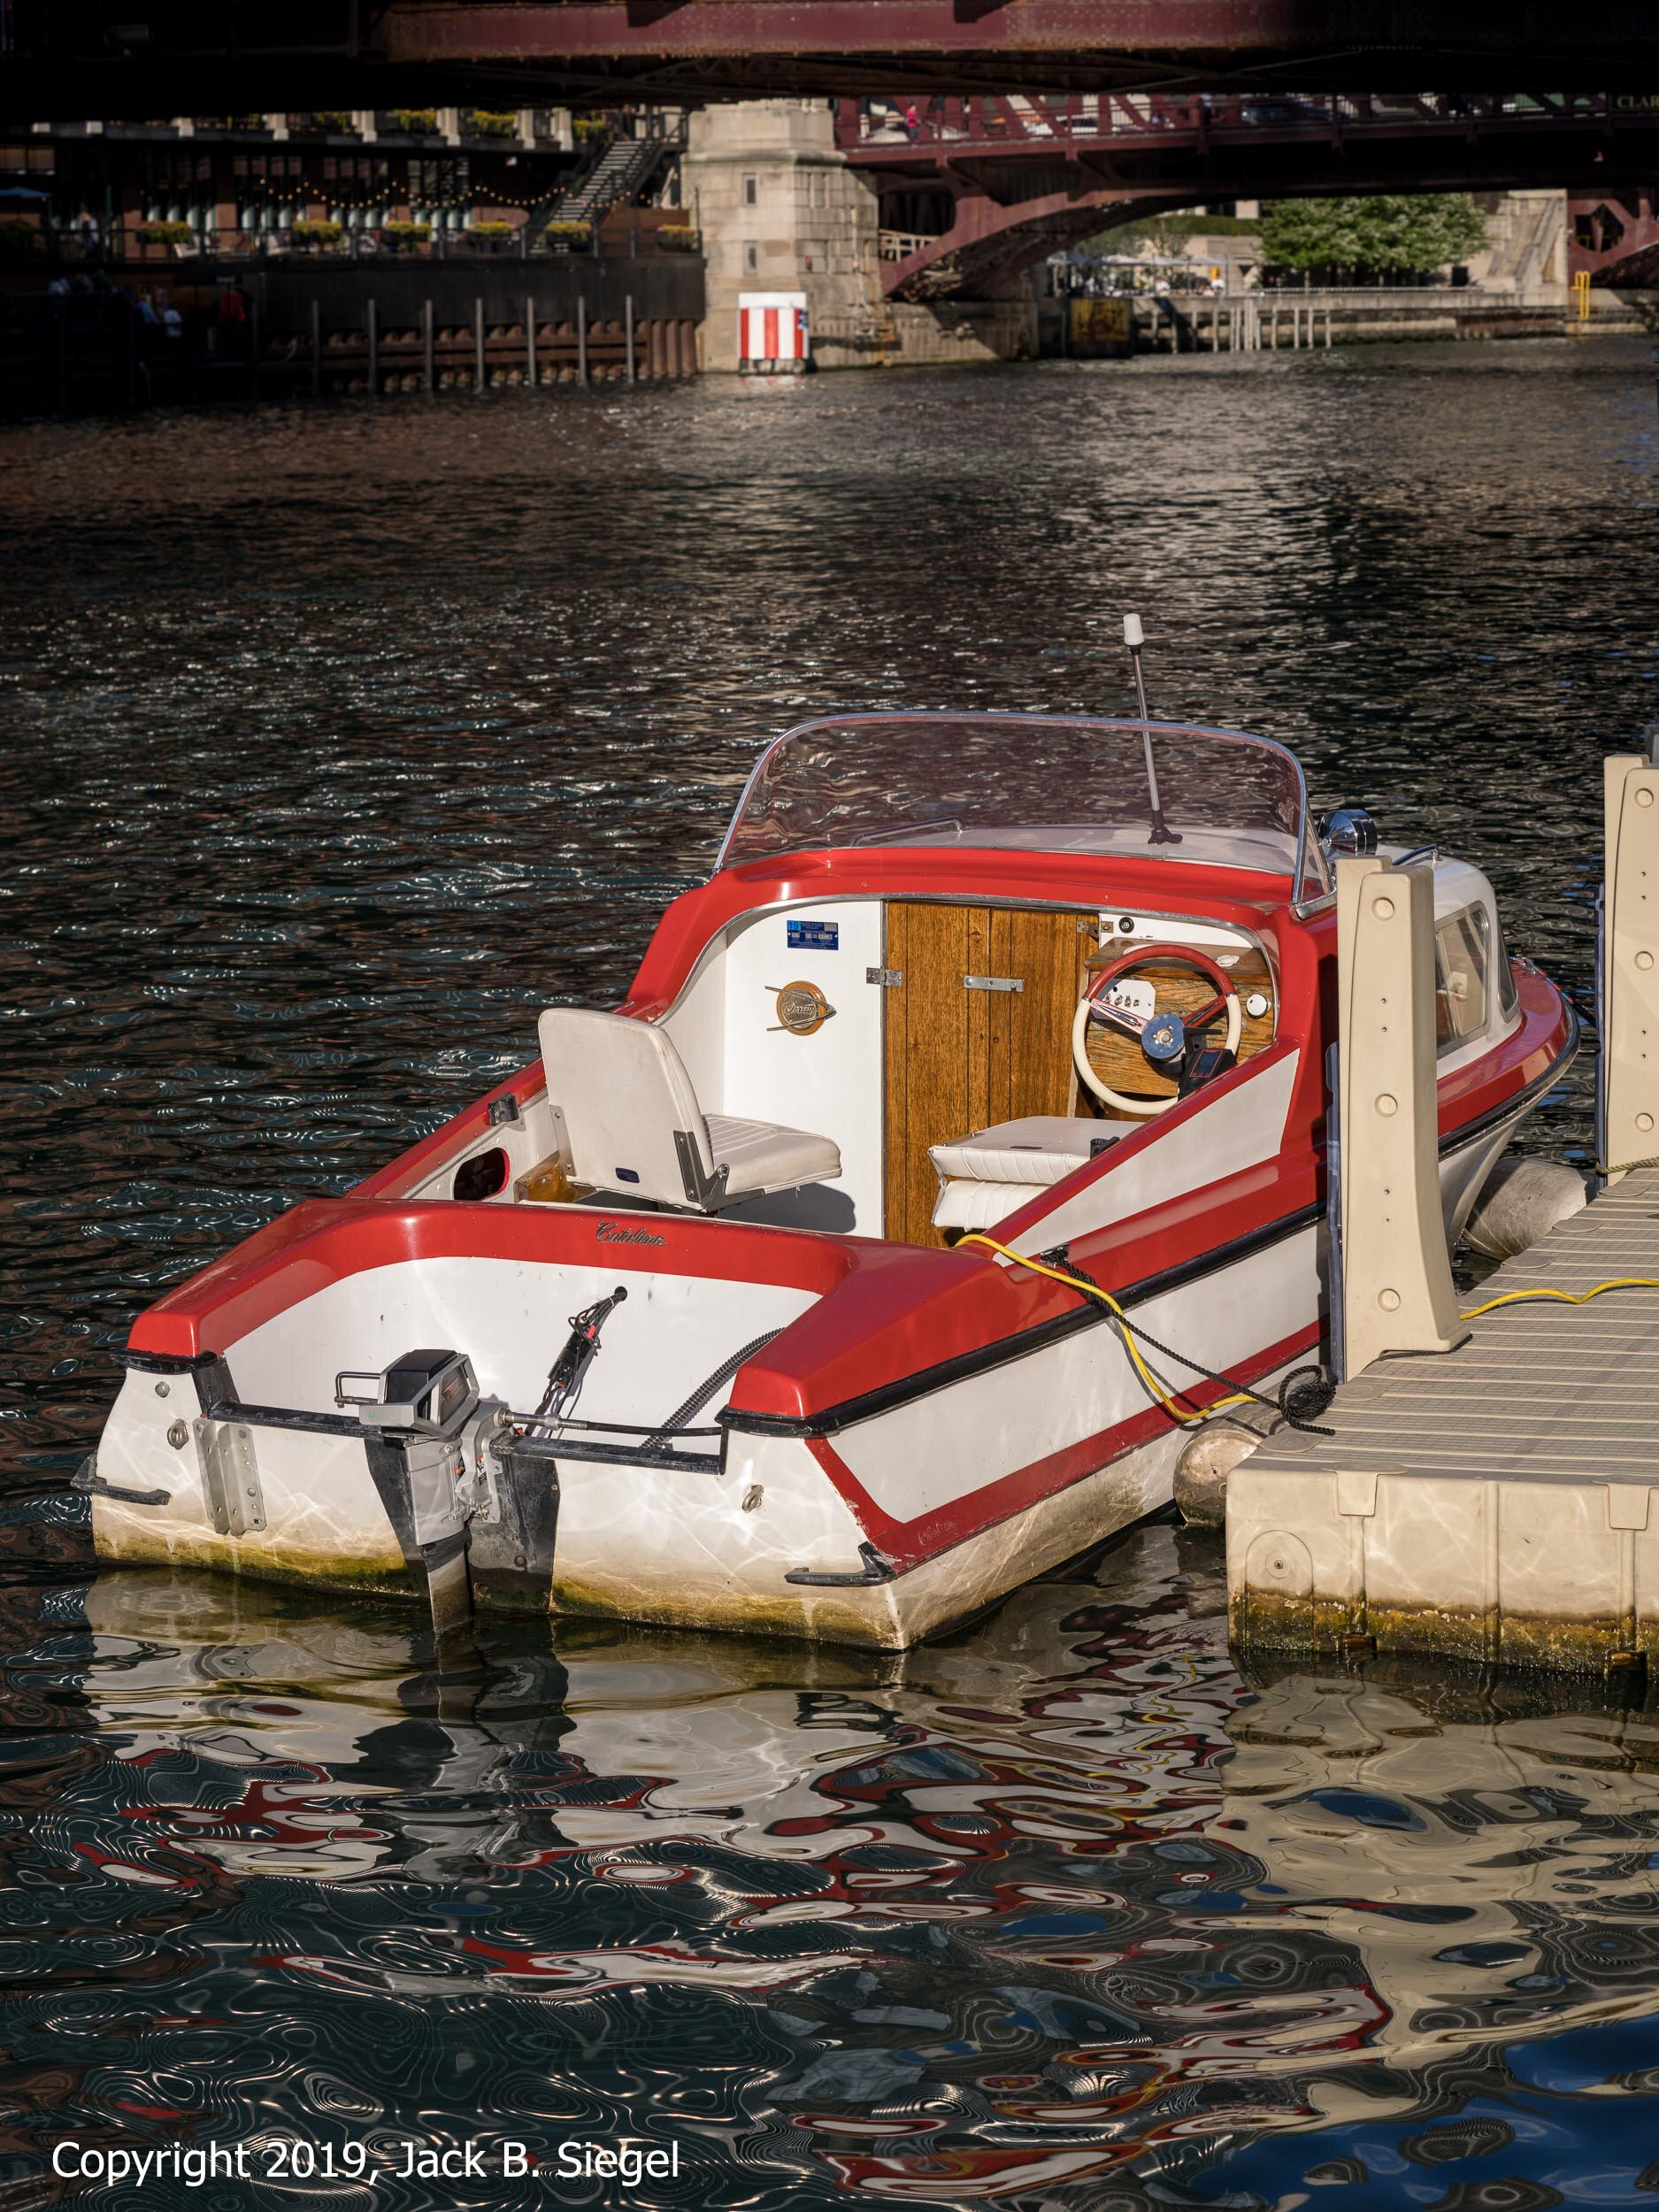 A Classic Motorboat from the Sixties is Docked at the River Walk, with the Sun Still Casting Its Warm Light